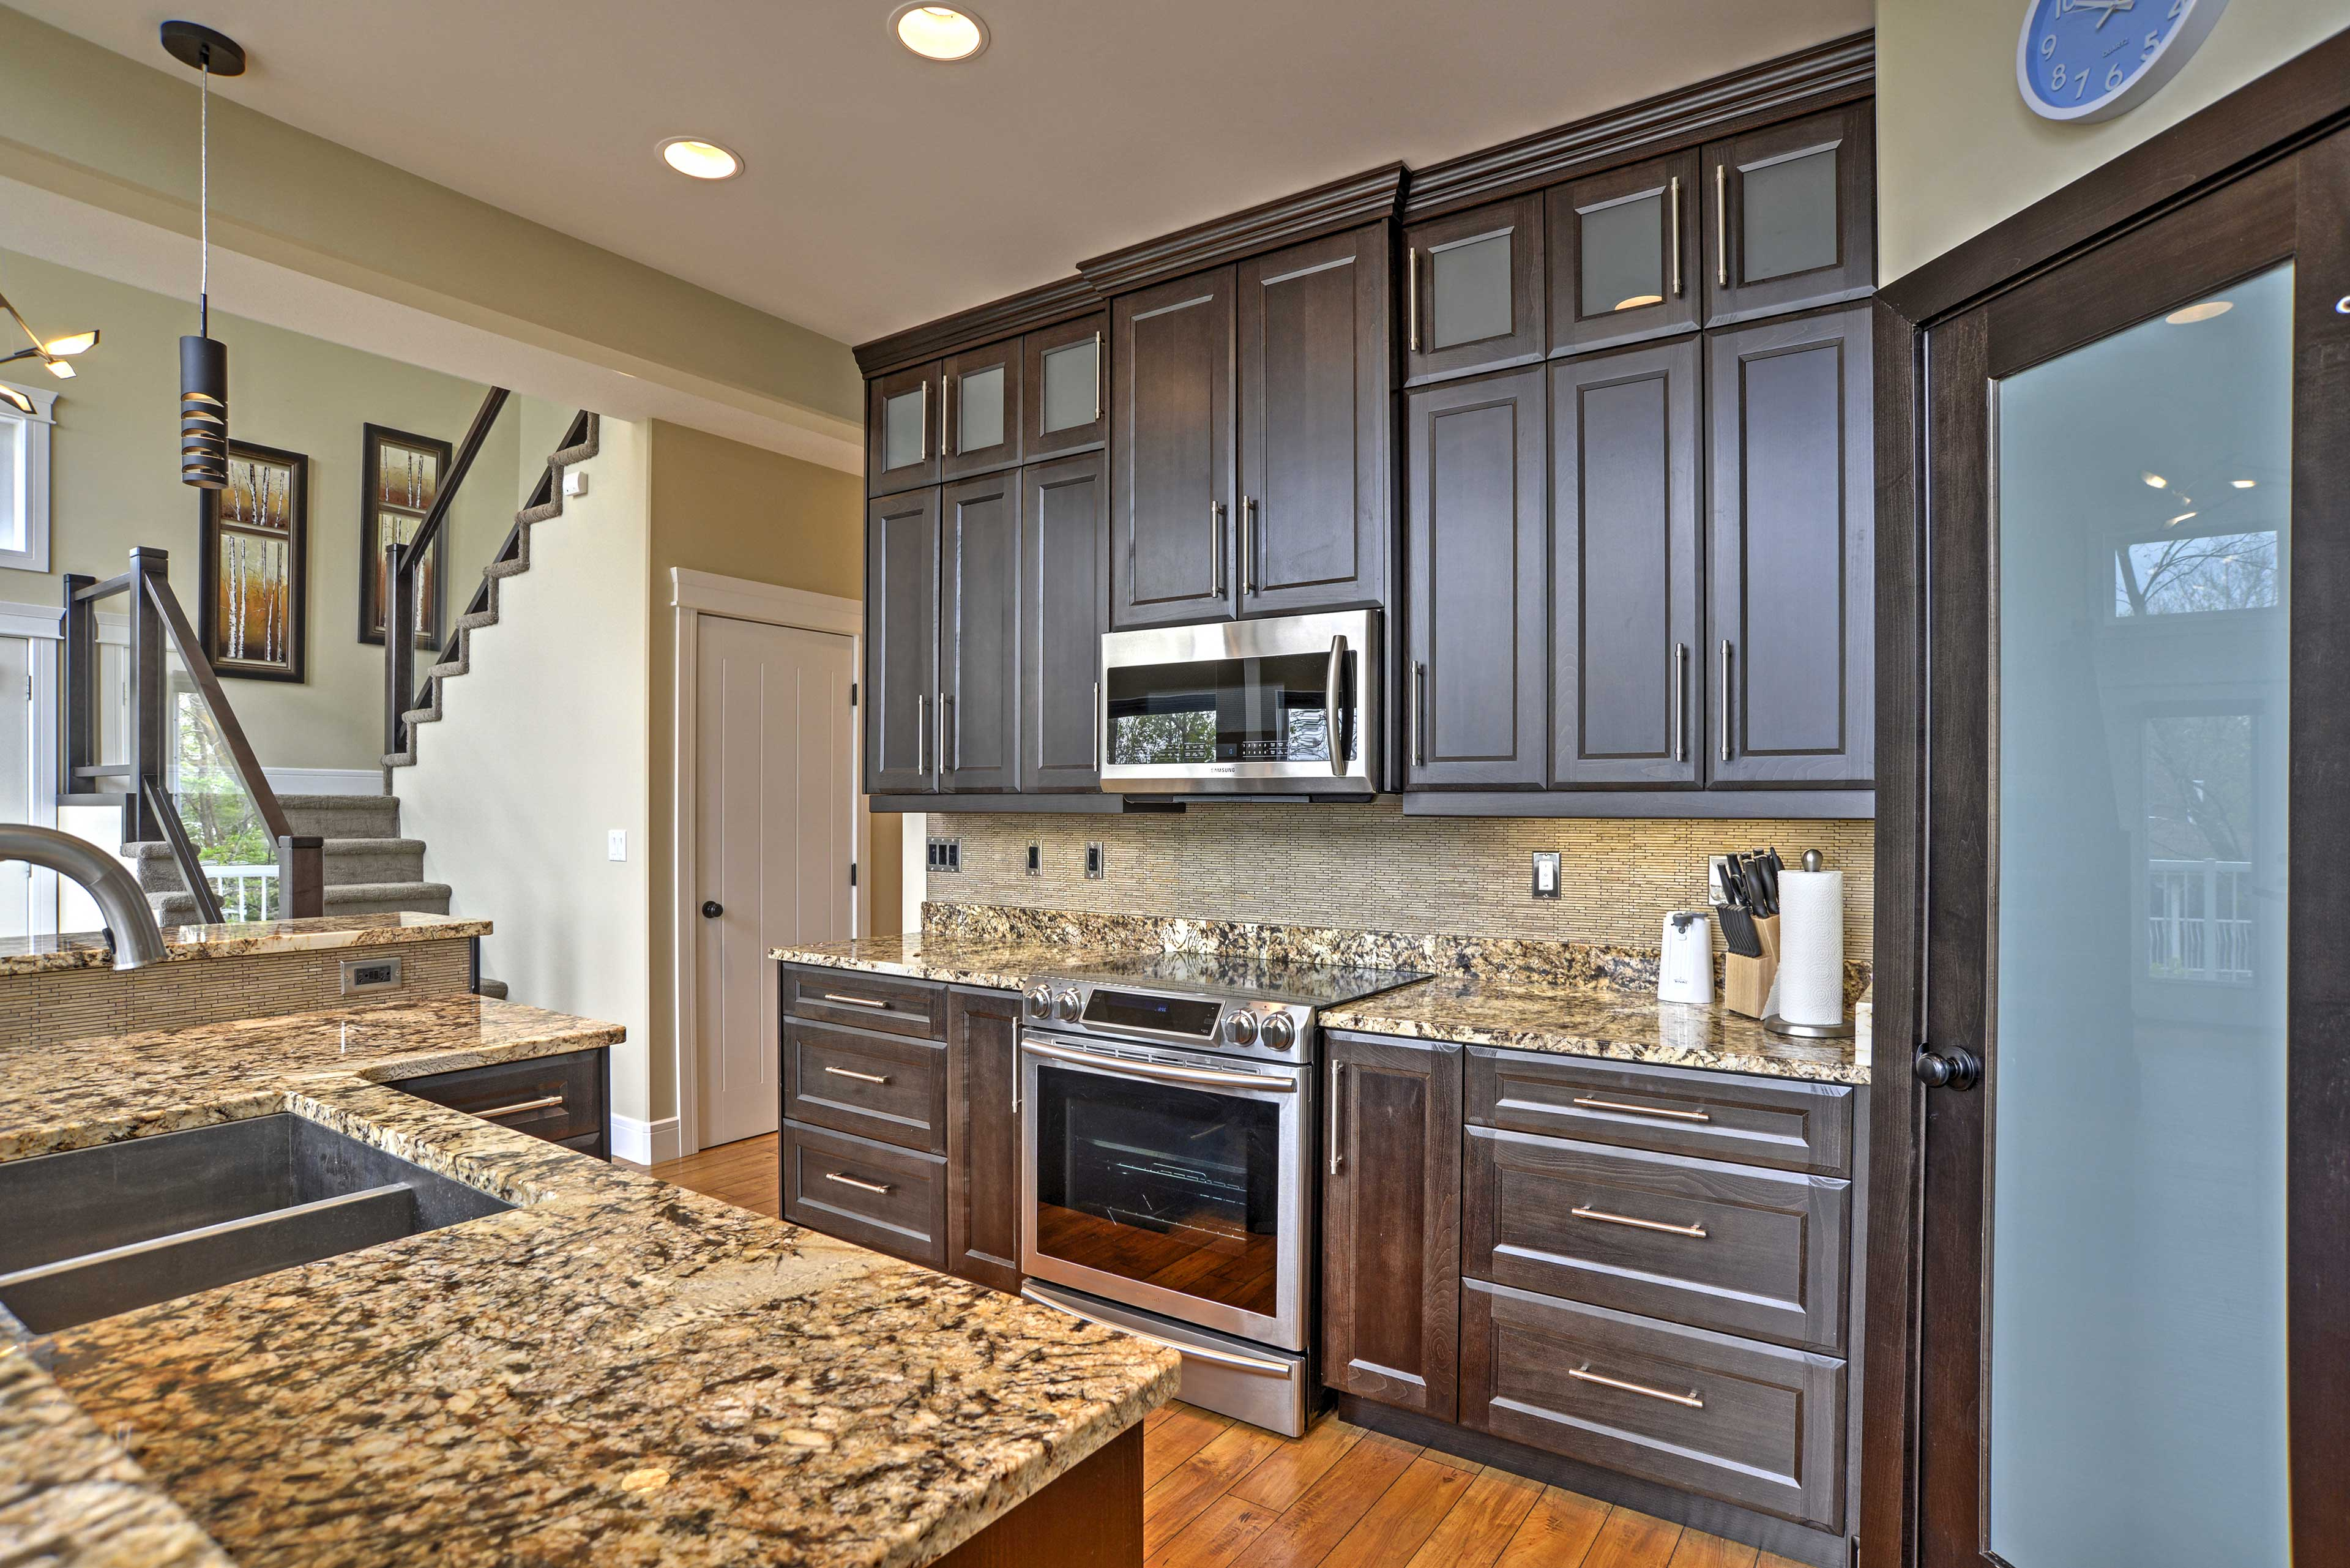 This kitchen has all the appliances you need to prepare your favorite meals.